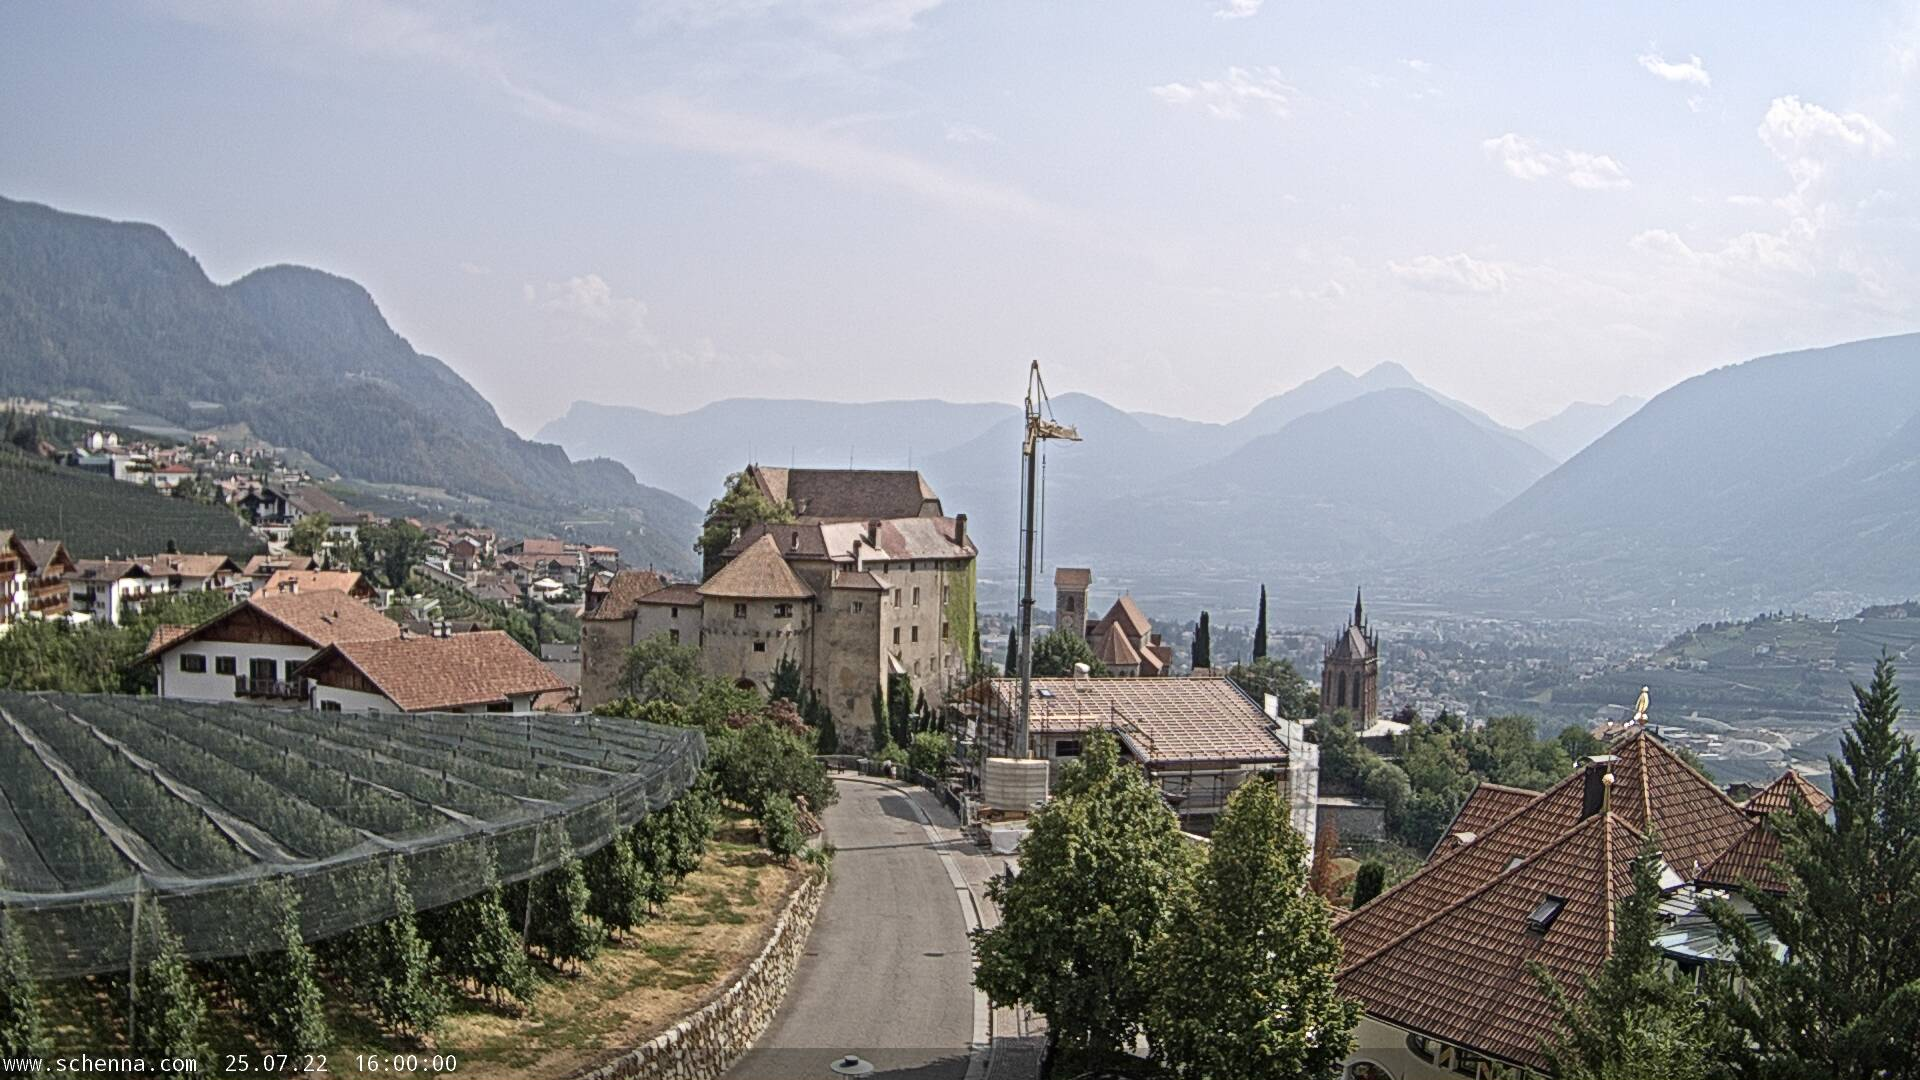 View on Castle Schenna, in the background the Etschtal